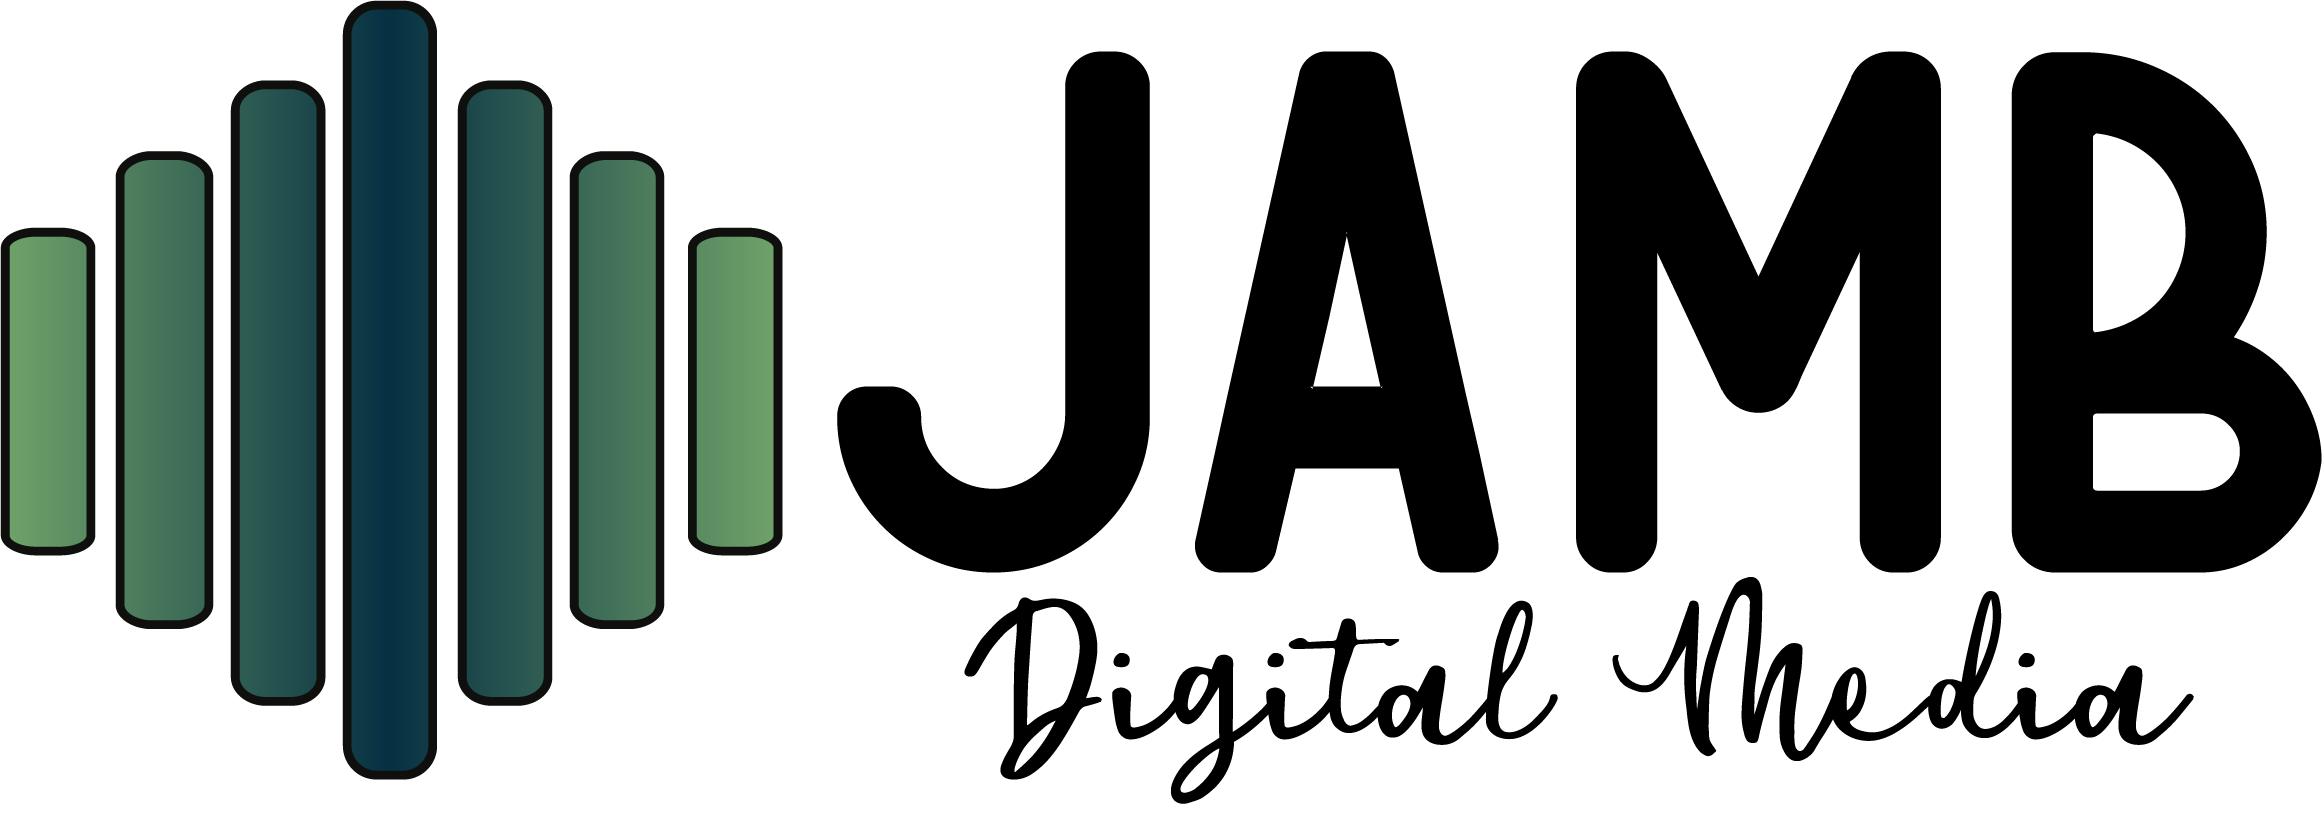 JAMB Digital Media Logo